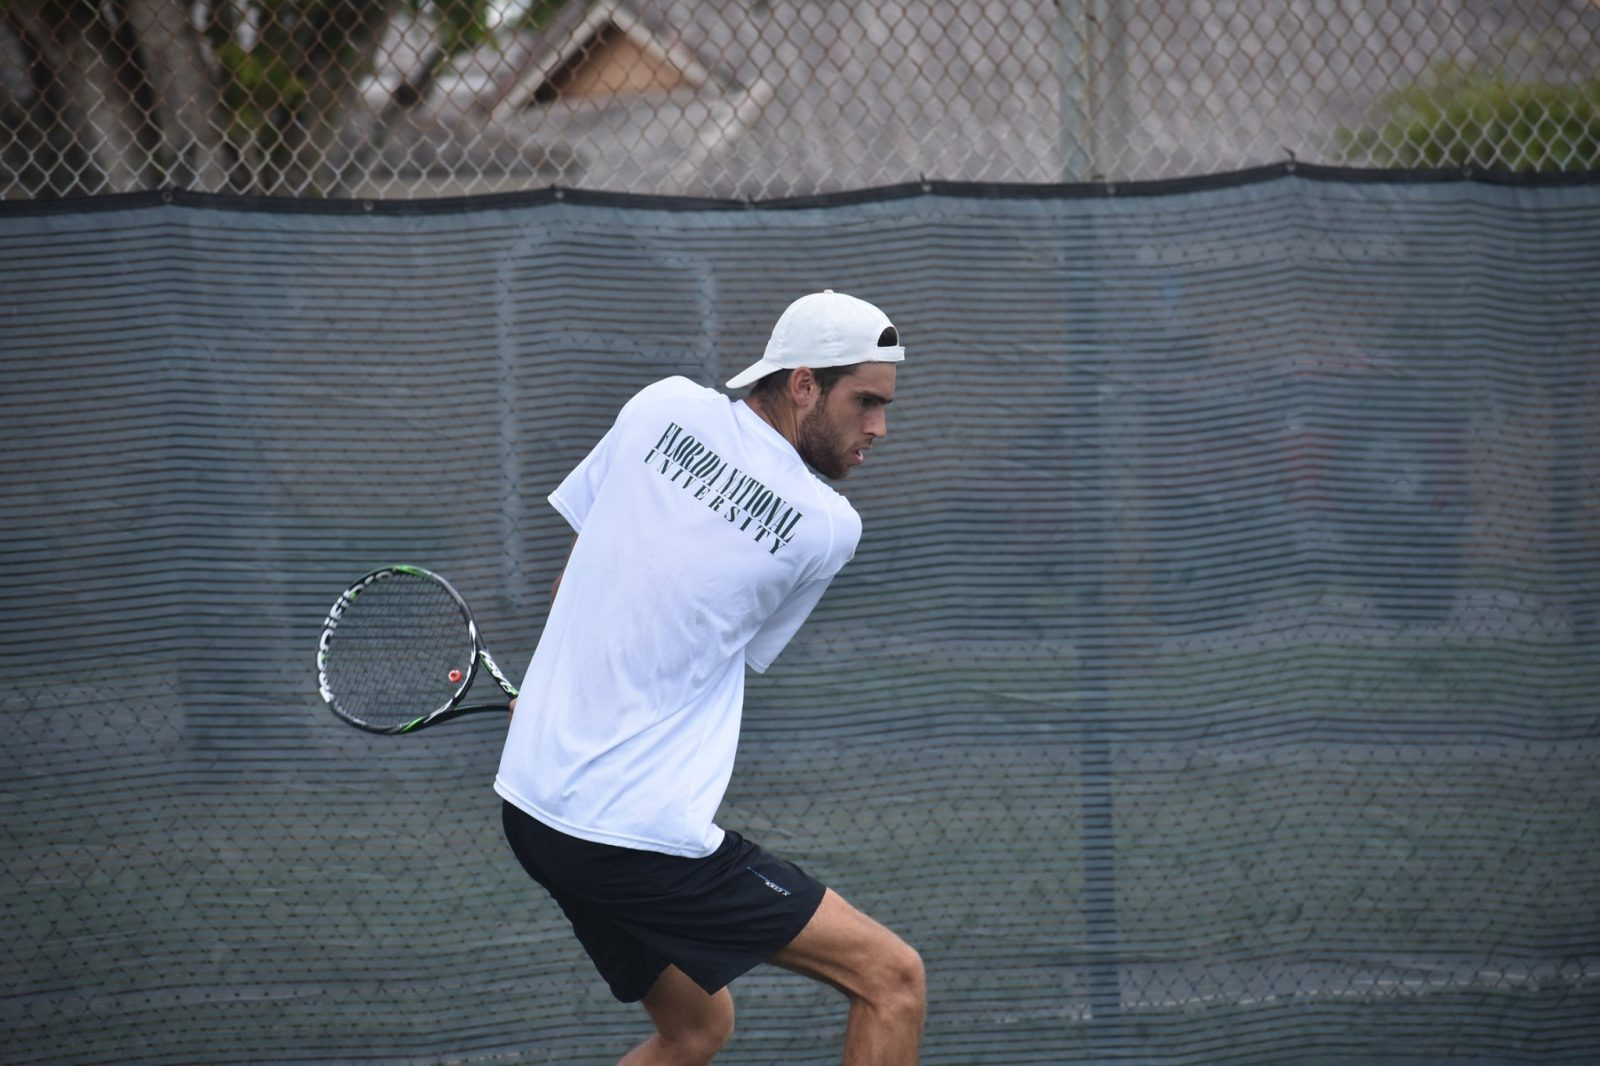 FNU tennis player hitting the ball